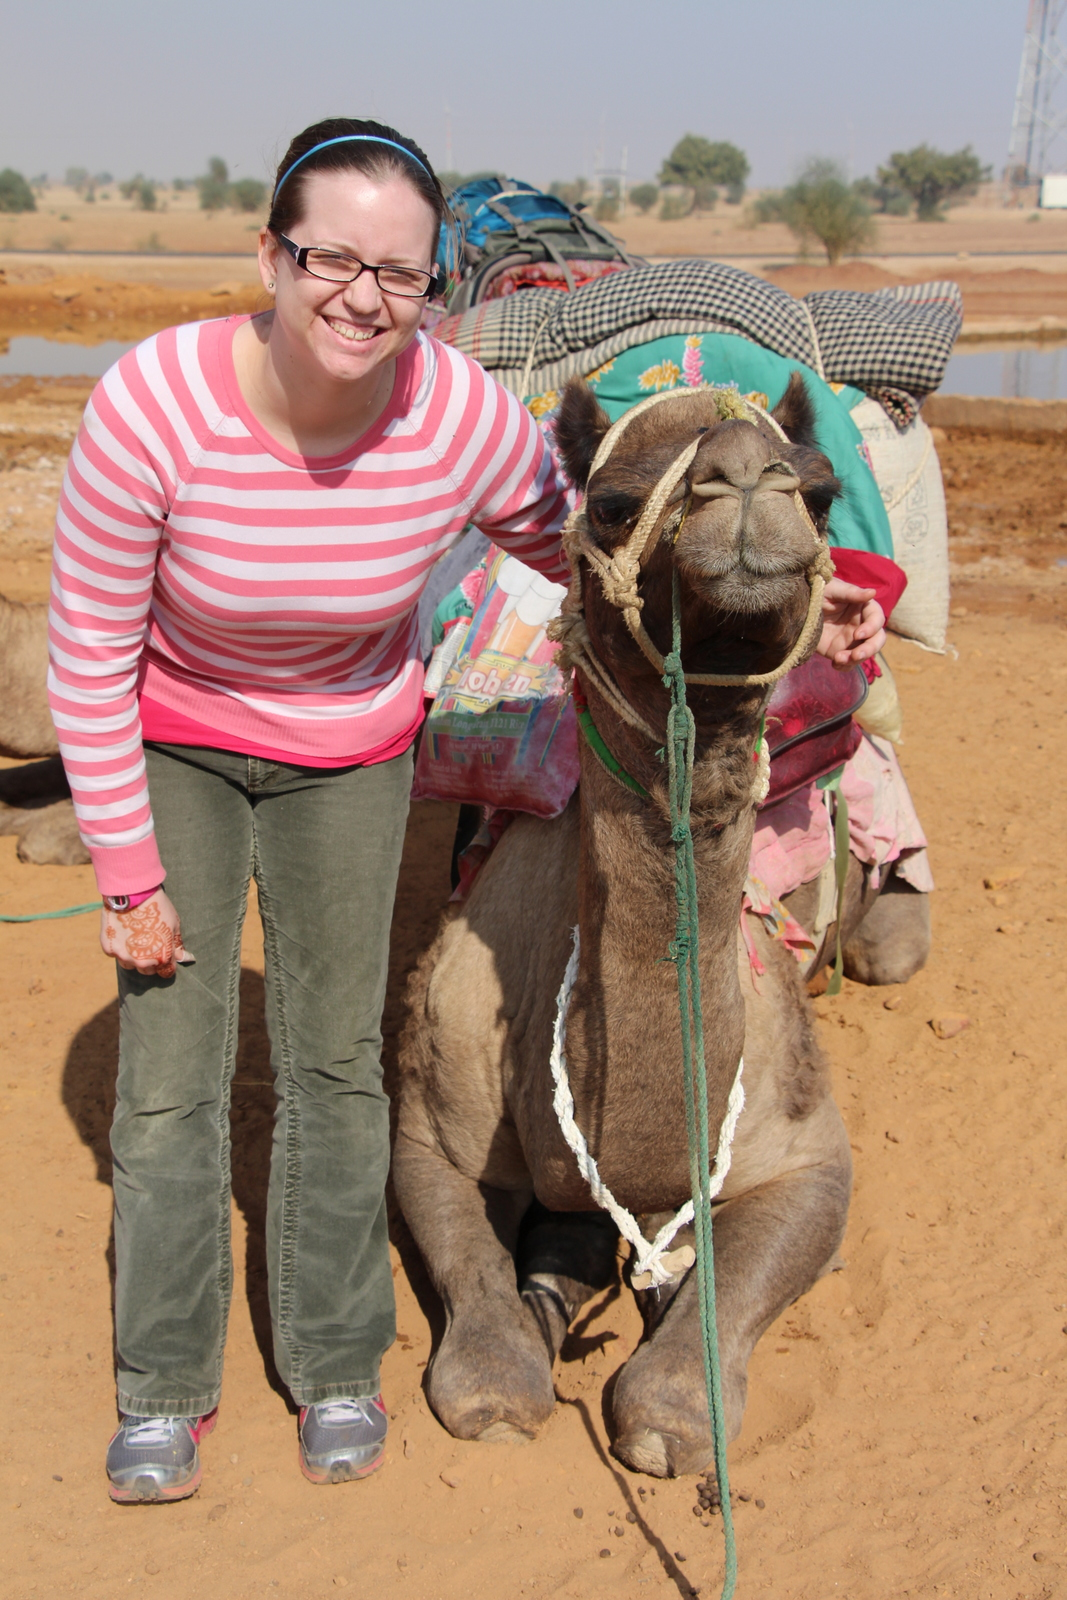 Tori and her camel Jed